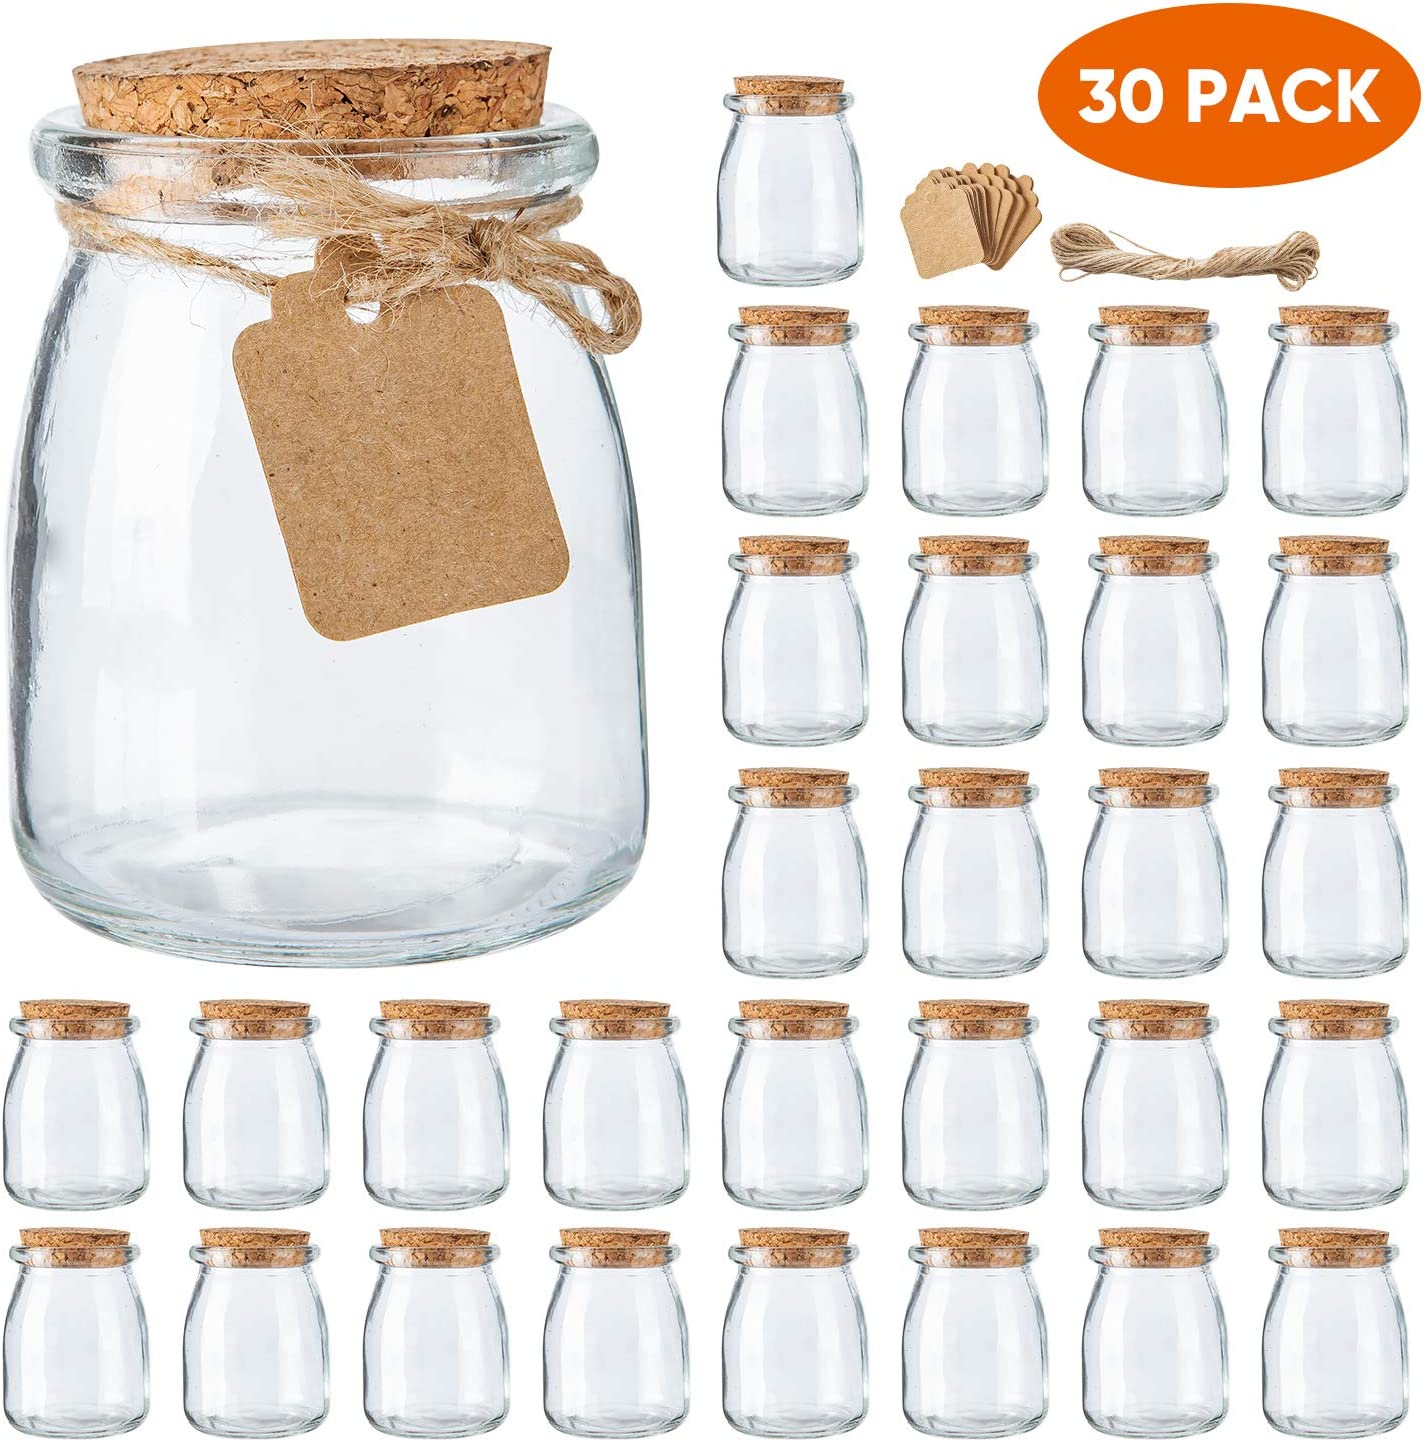 Mini Yogurt Jars 30 Pack, 7 oz Glass Favor Jars with Cork Lids, Glass Pudding jars, Glass Containers with Lids, Mason Jar Wedding Favors Honey Pot with Label Tags and String